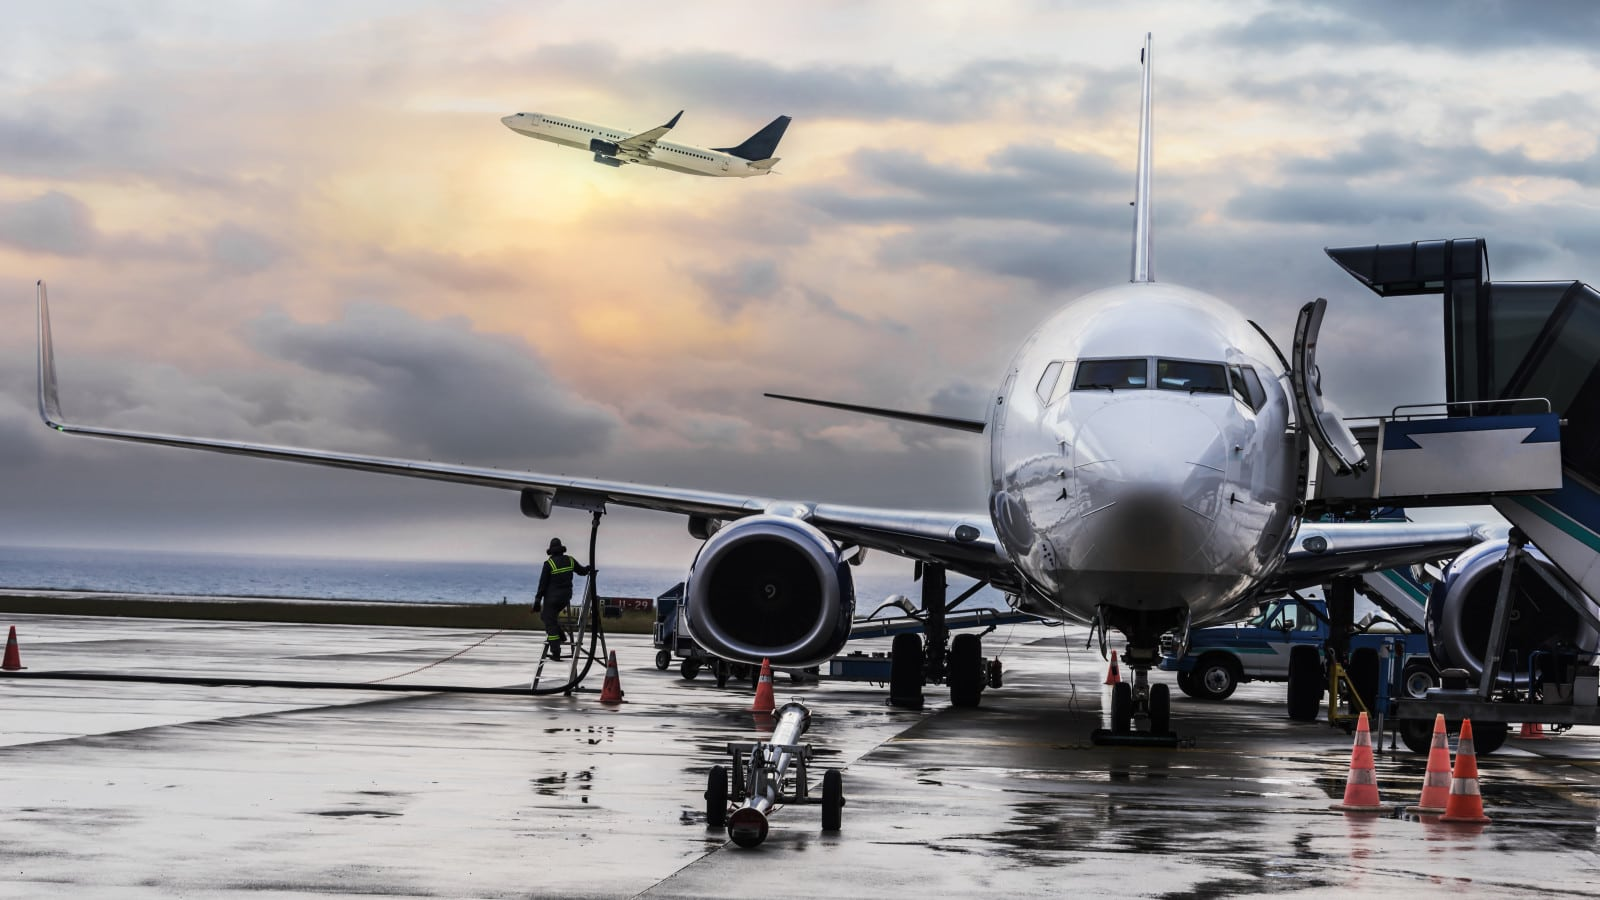 Airplane Being Refueled Stock Photo